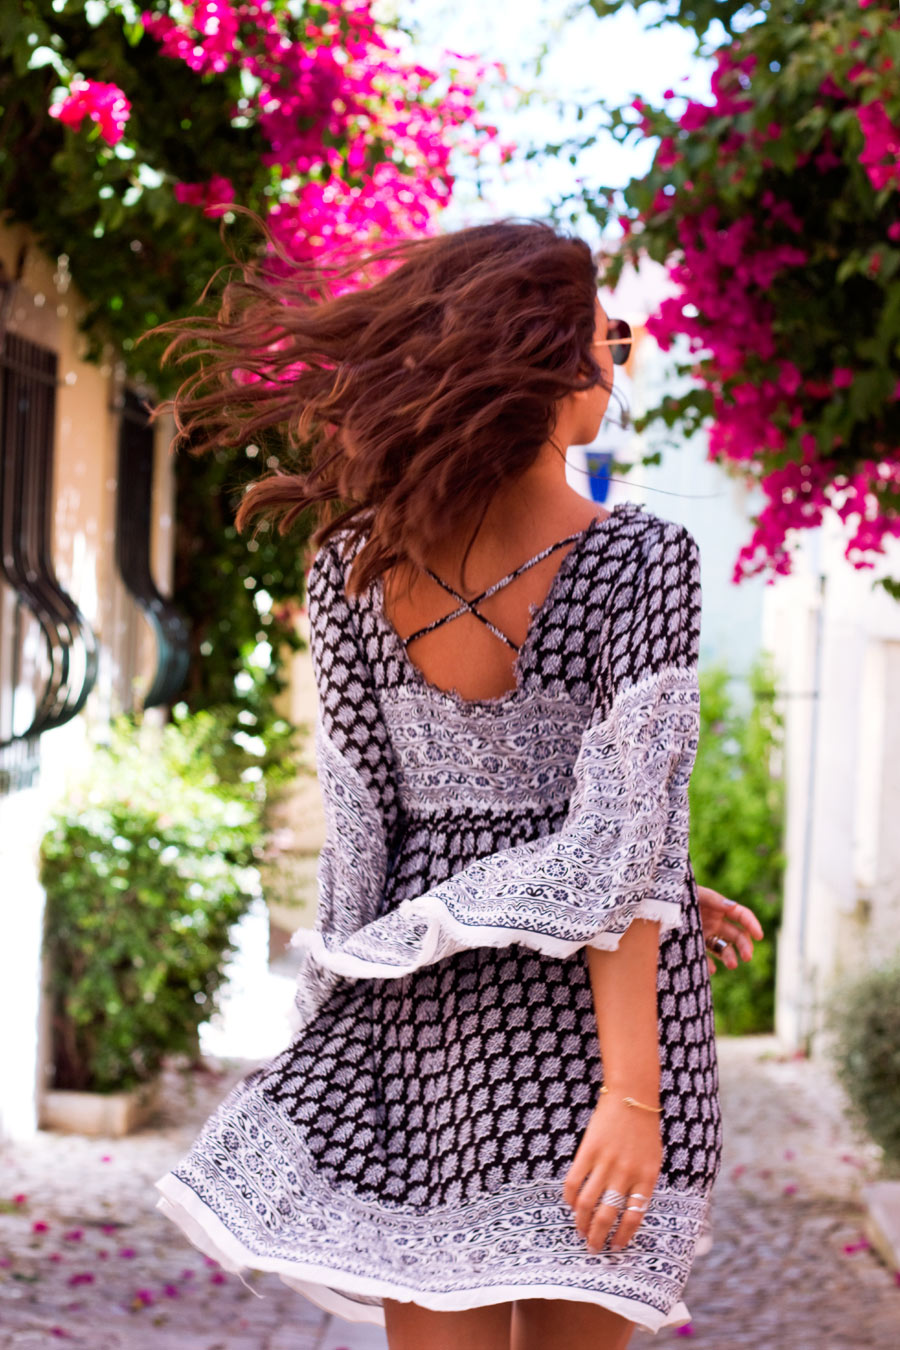 Kayla Seah is wearing a black and white dress from Free People